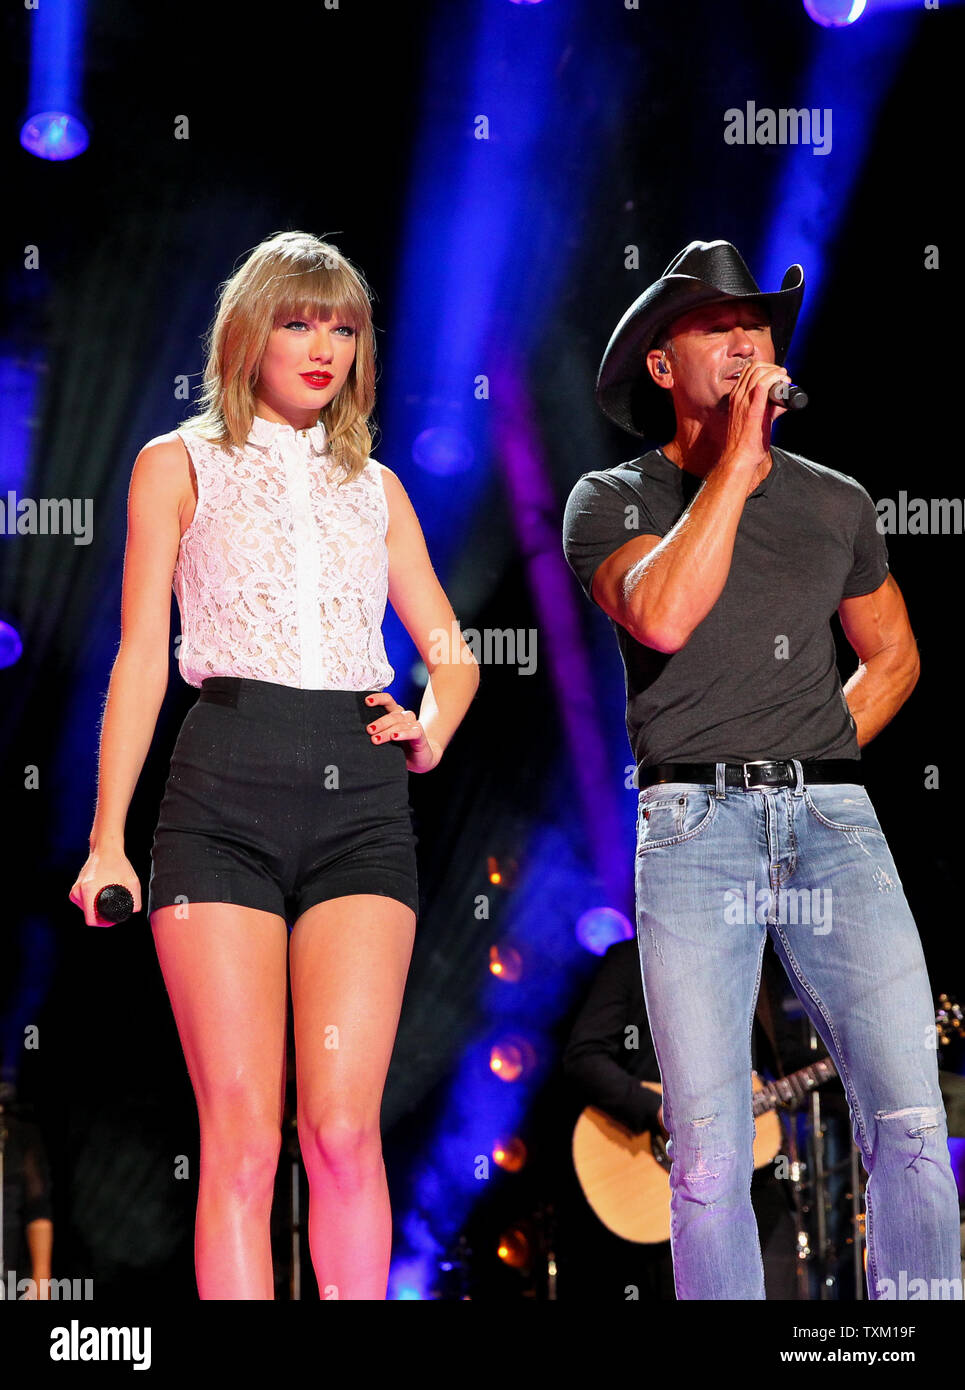 Taylor Swift Performs With Tim Mcgraw During The Cma Music Festival At Lp Field In Nashville On June 6 2013 Upi Terry Wyatt Stock Photo Alamy